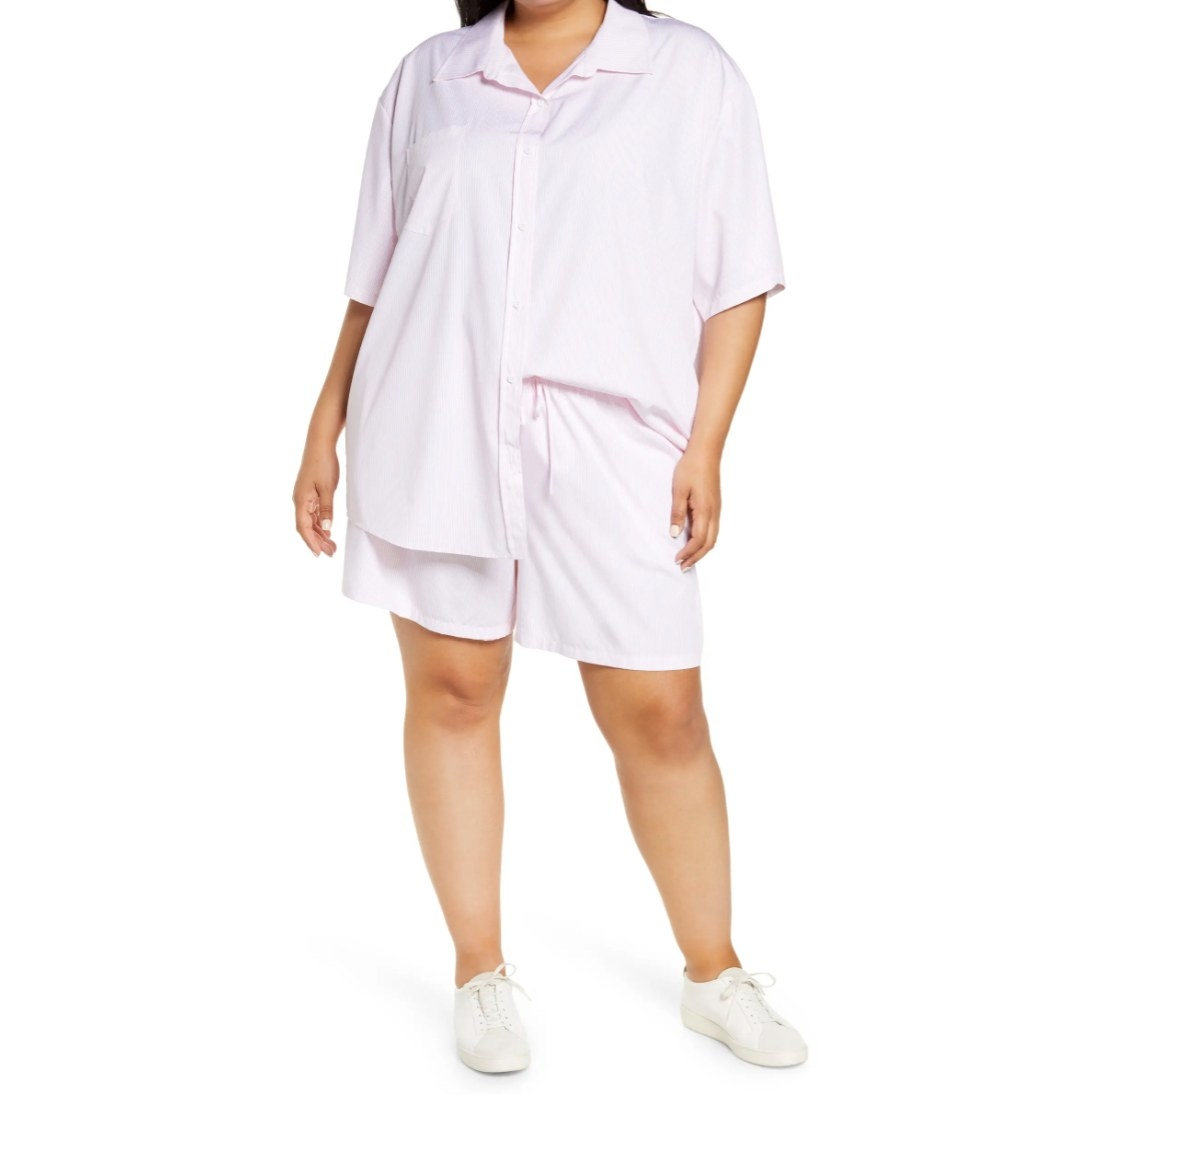 The plana button front shirt in pink